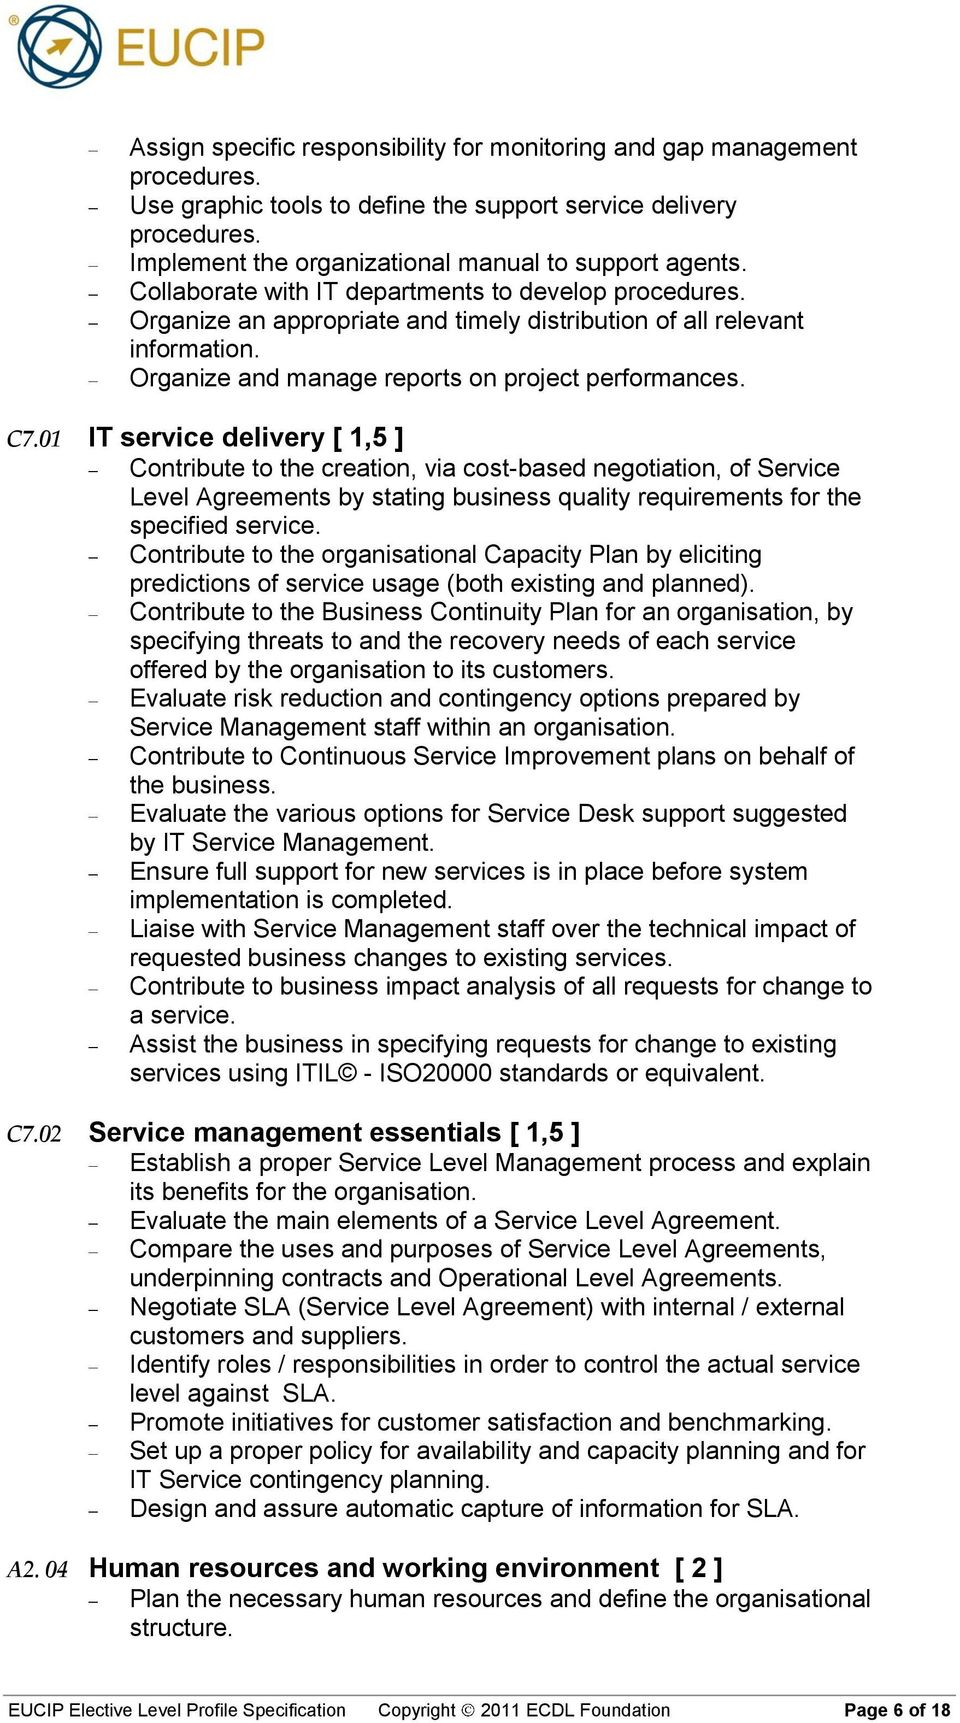 01 IT service delivery [ 1,5 ] Contribute to the creation, via cost-based negotiation, of Service Level Agreements by stating business quality requirements for the specified service.